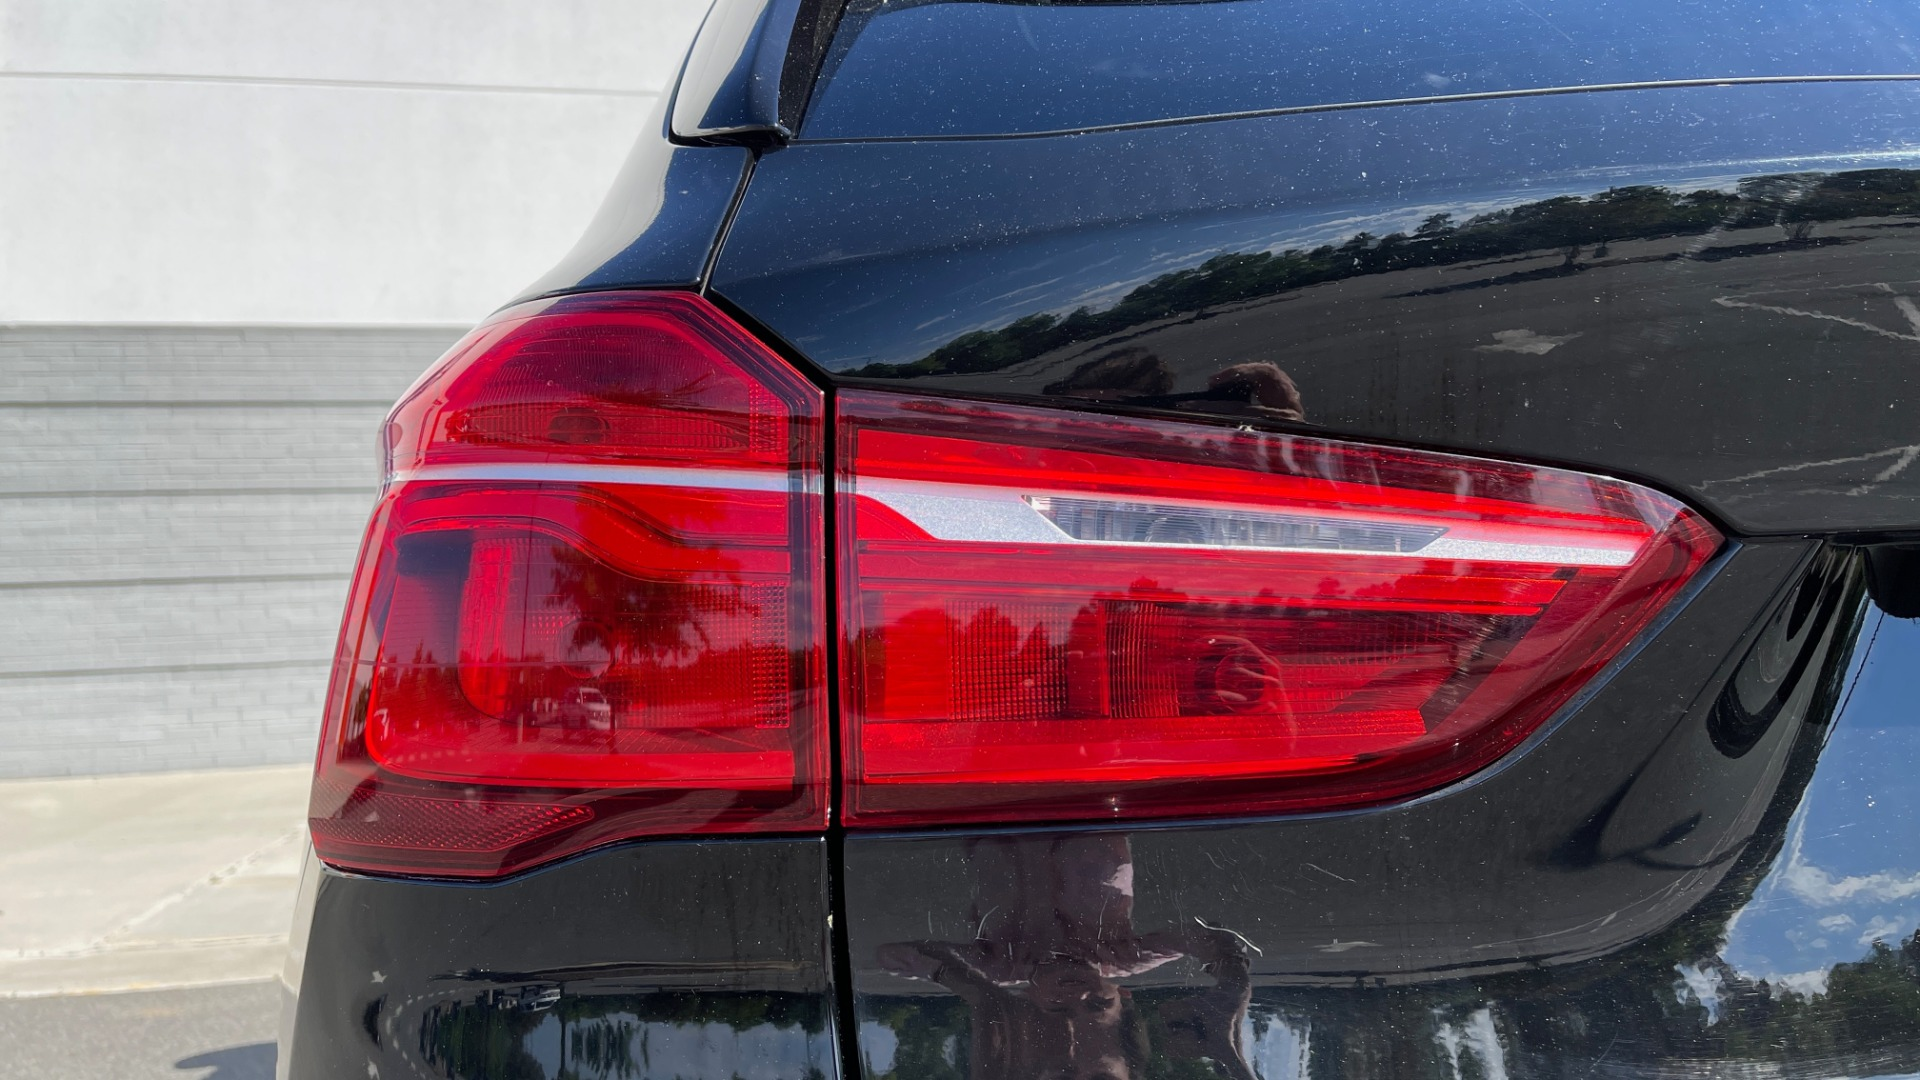 Used 2018 BMW X1 XDRIVE28I / CONV PKG / HTD SEATS / PANO-ROOF / REARVIEW for sale Sold at Formula Imports in Charlotte NC 28227 20